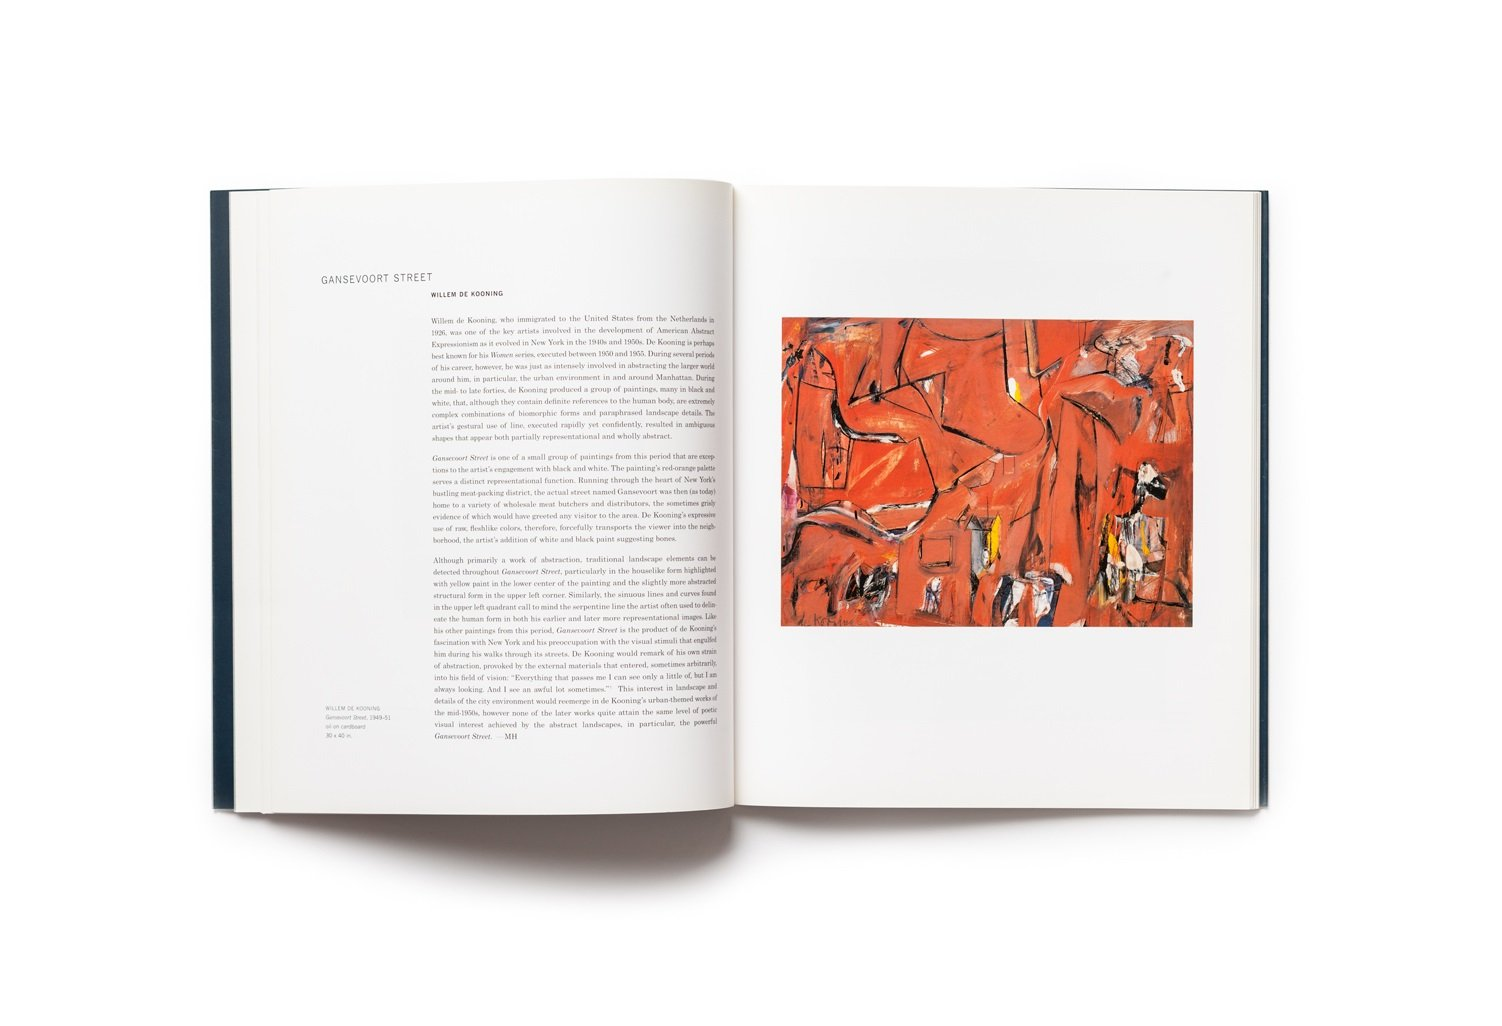 Celebrating Modern Art: Highlights of the Anderson Collection publication pages 28-29